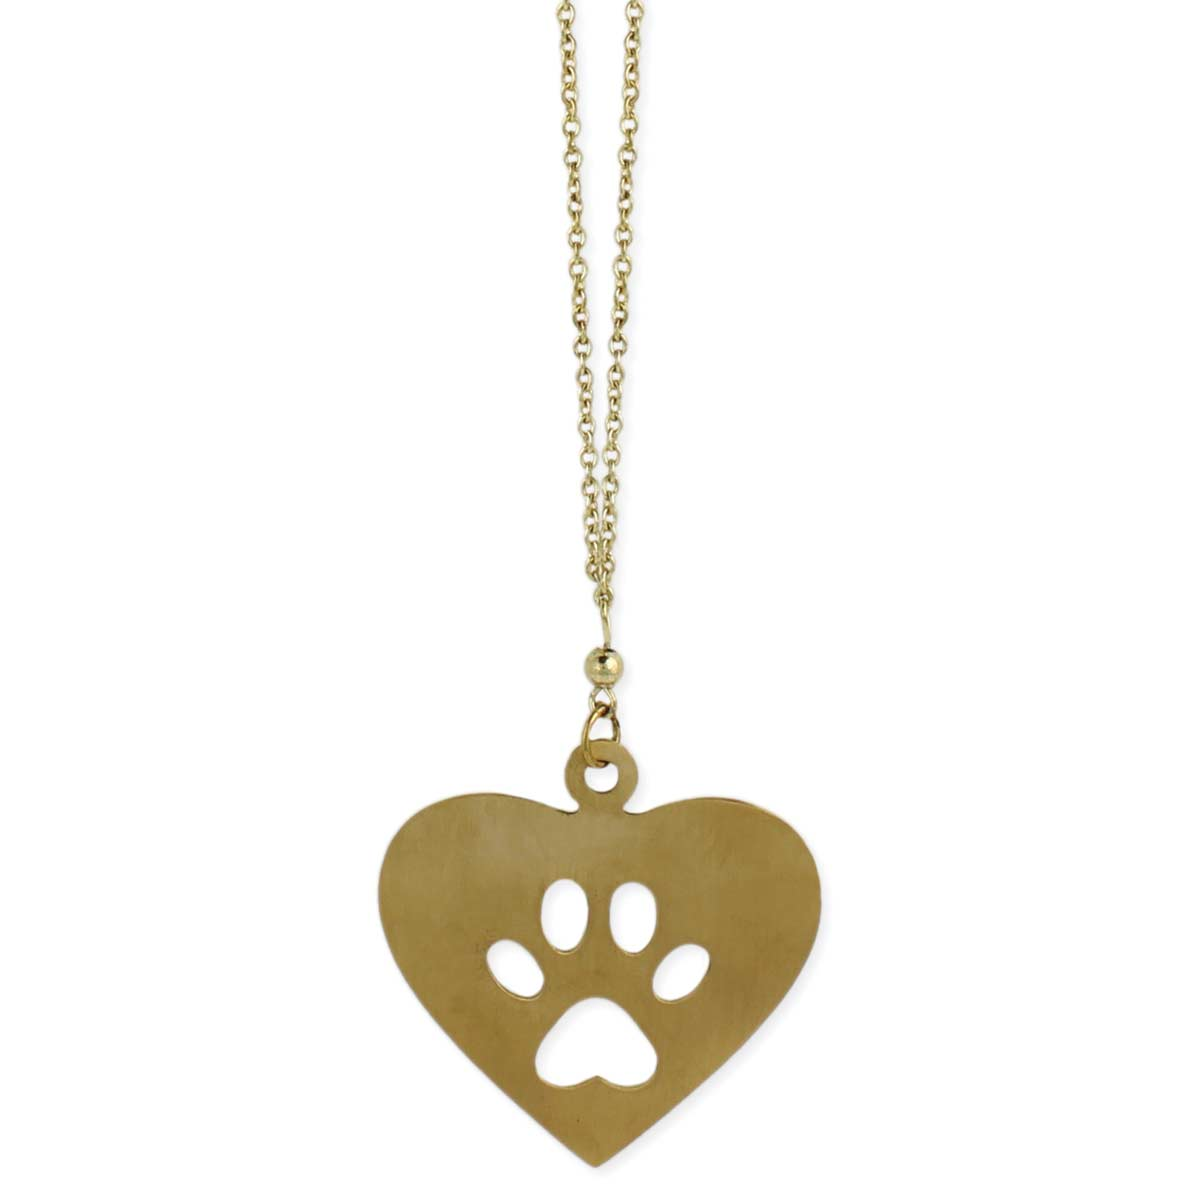 Gold Dog Paw Heart Necklace